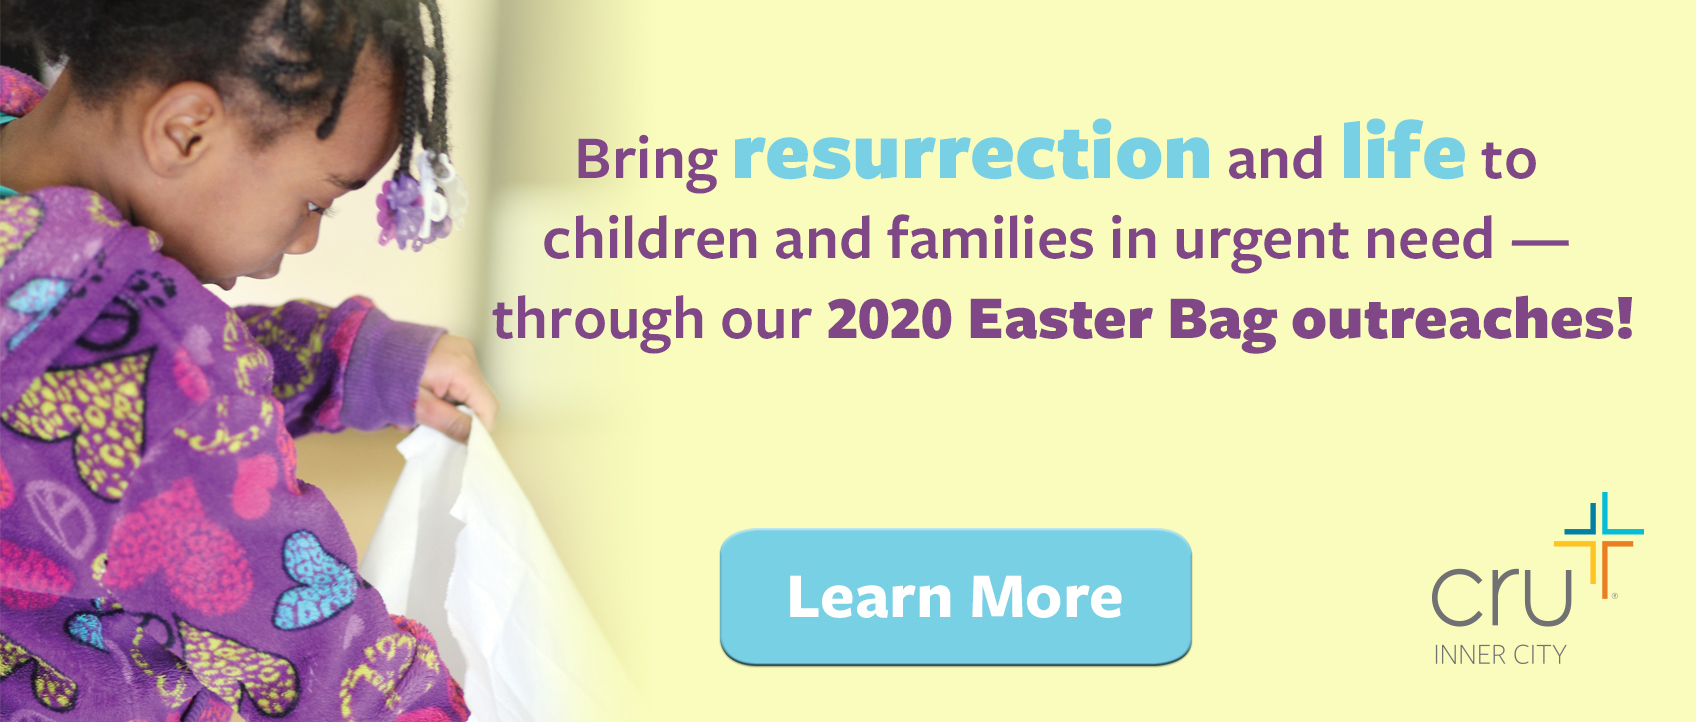 Give to Easter Bags